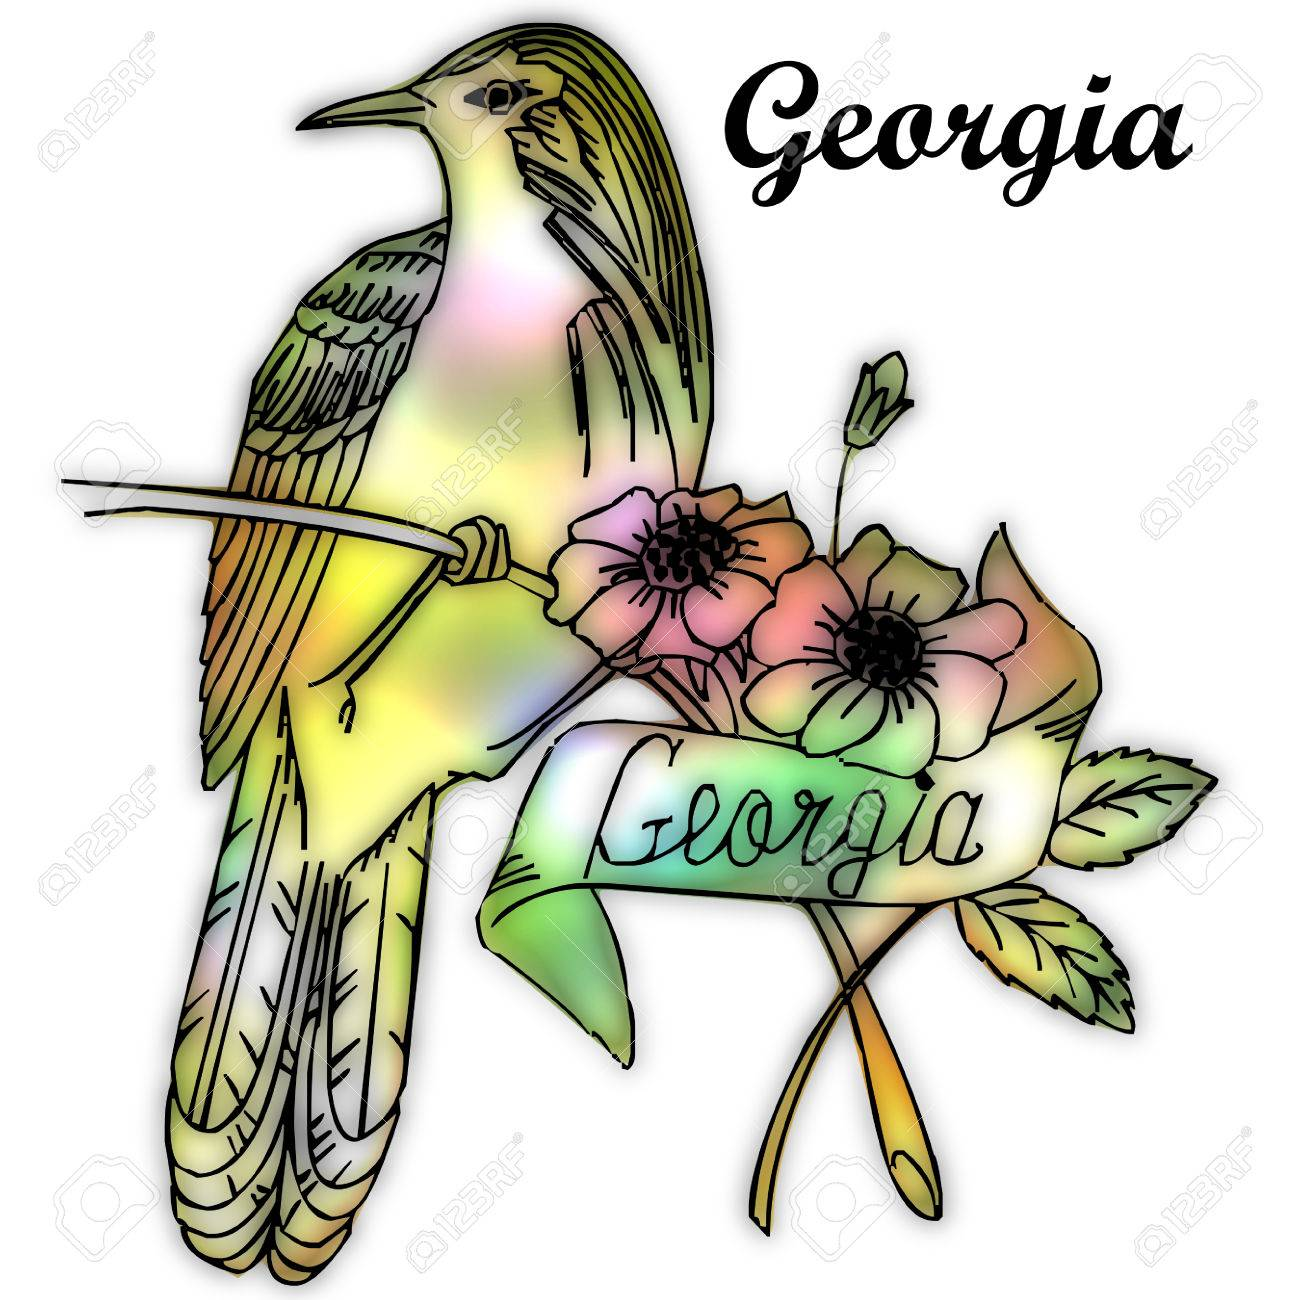 Georgia State Bird Stock Photo, Picture And Royalty Free Image